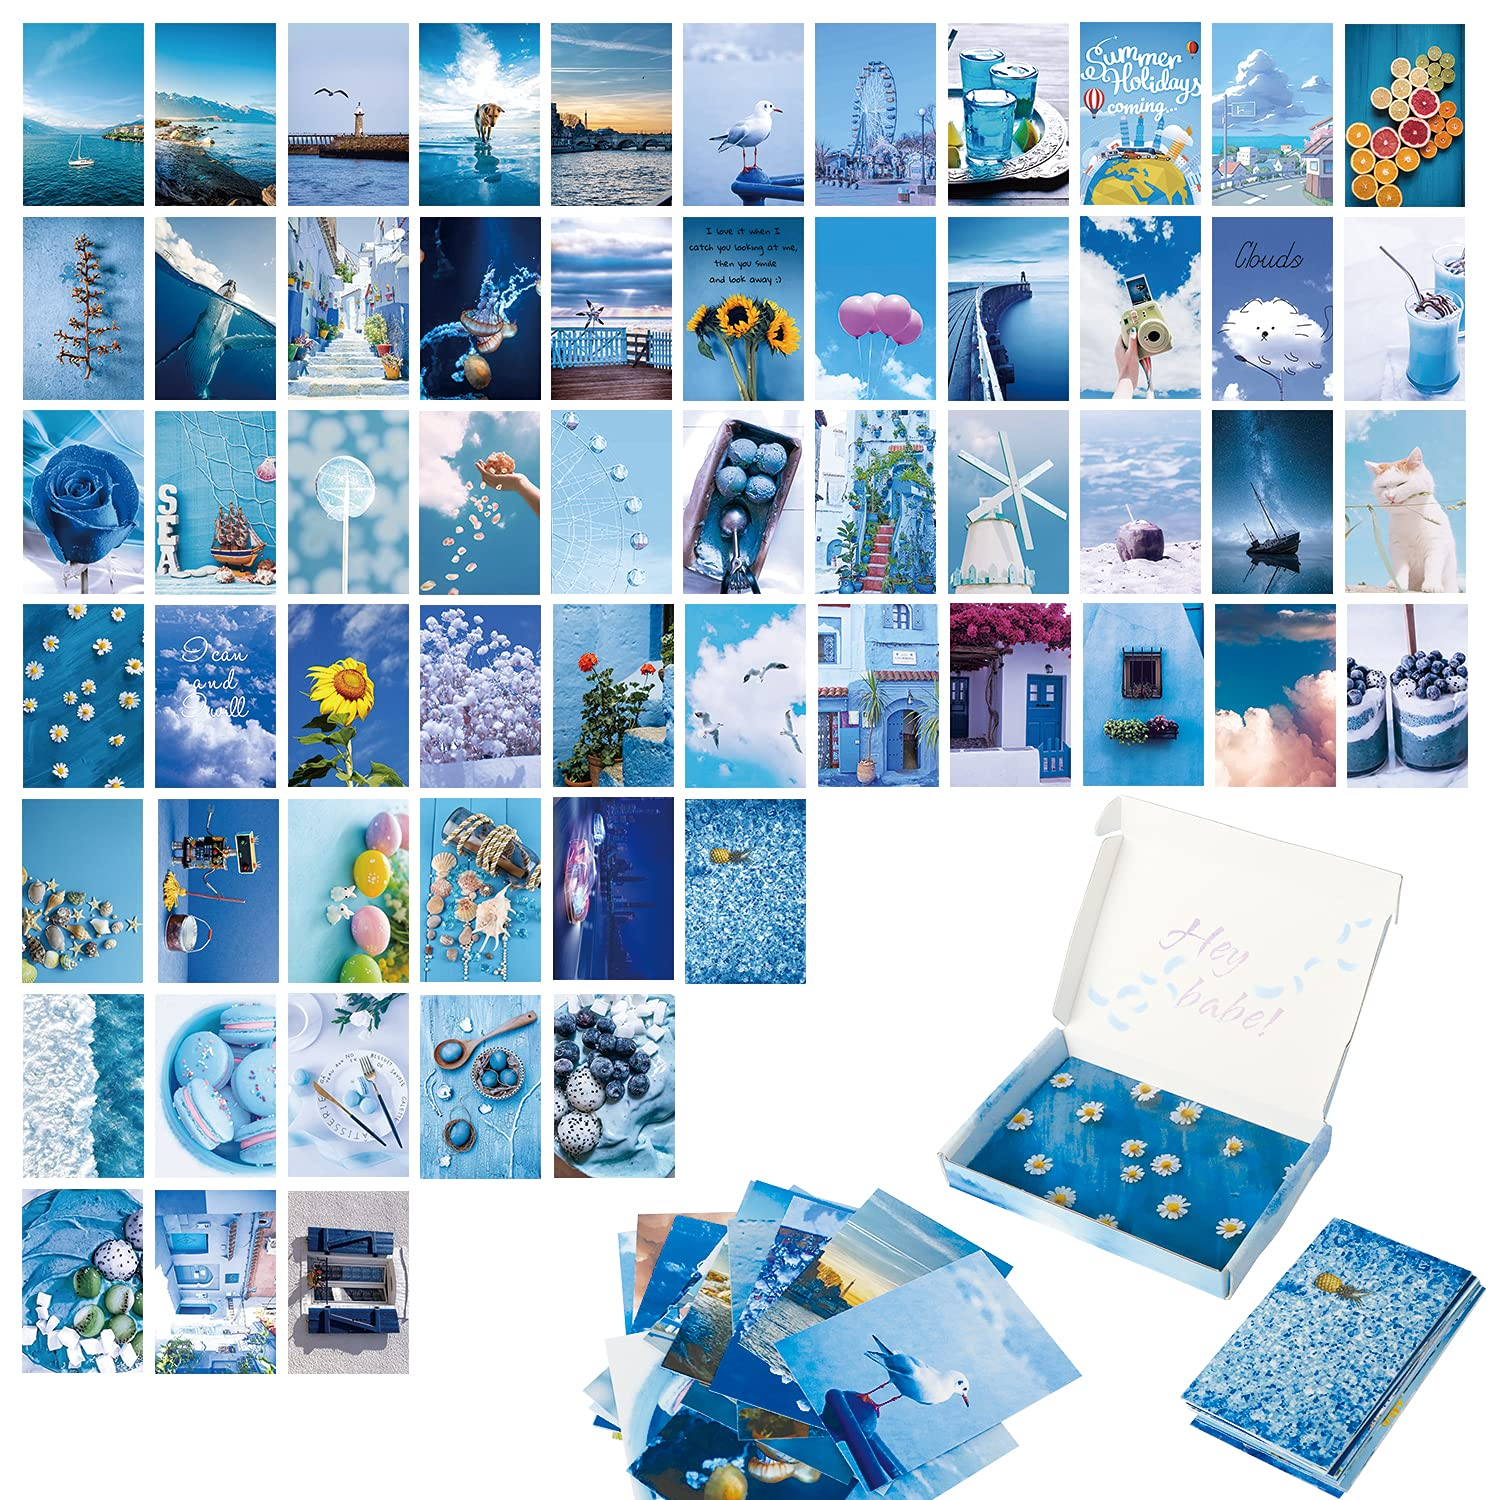 JoneTing Wall Collage Kit Aesthetic Pictures 60Pcs Blue Photo Collage Kit for Wall Aesthetic,Bedroom Decor for Bedroom Aesthetic Photo Poster Prints for Wall Decor